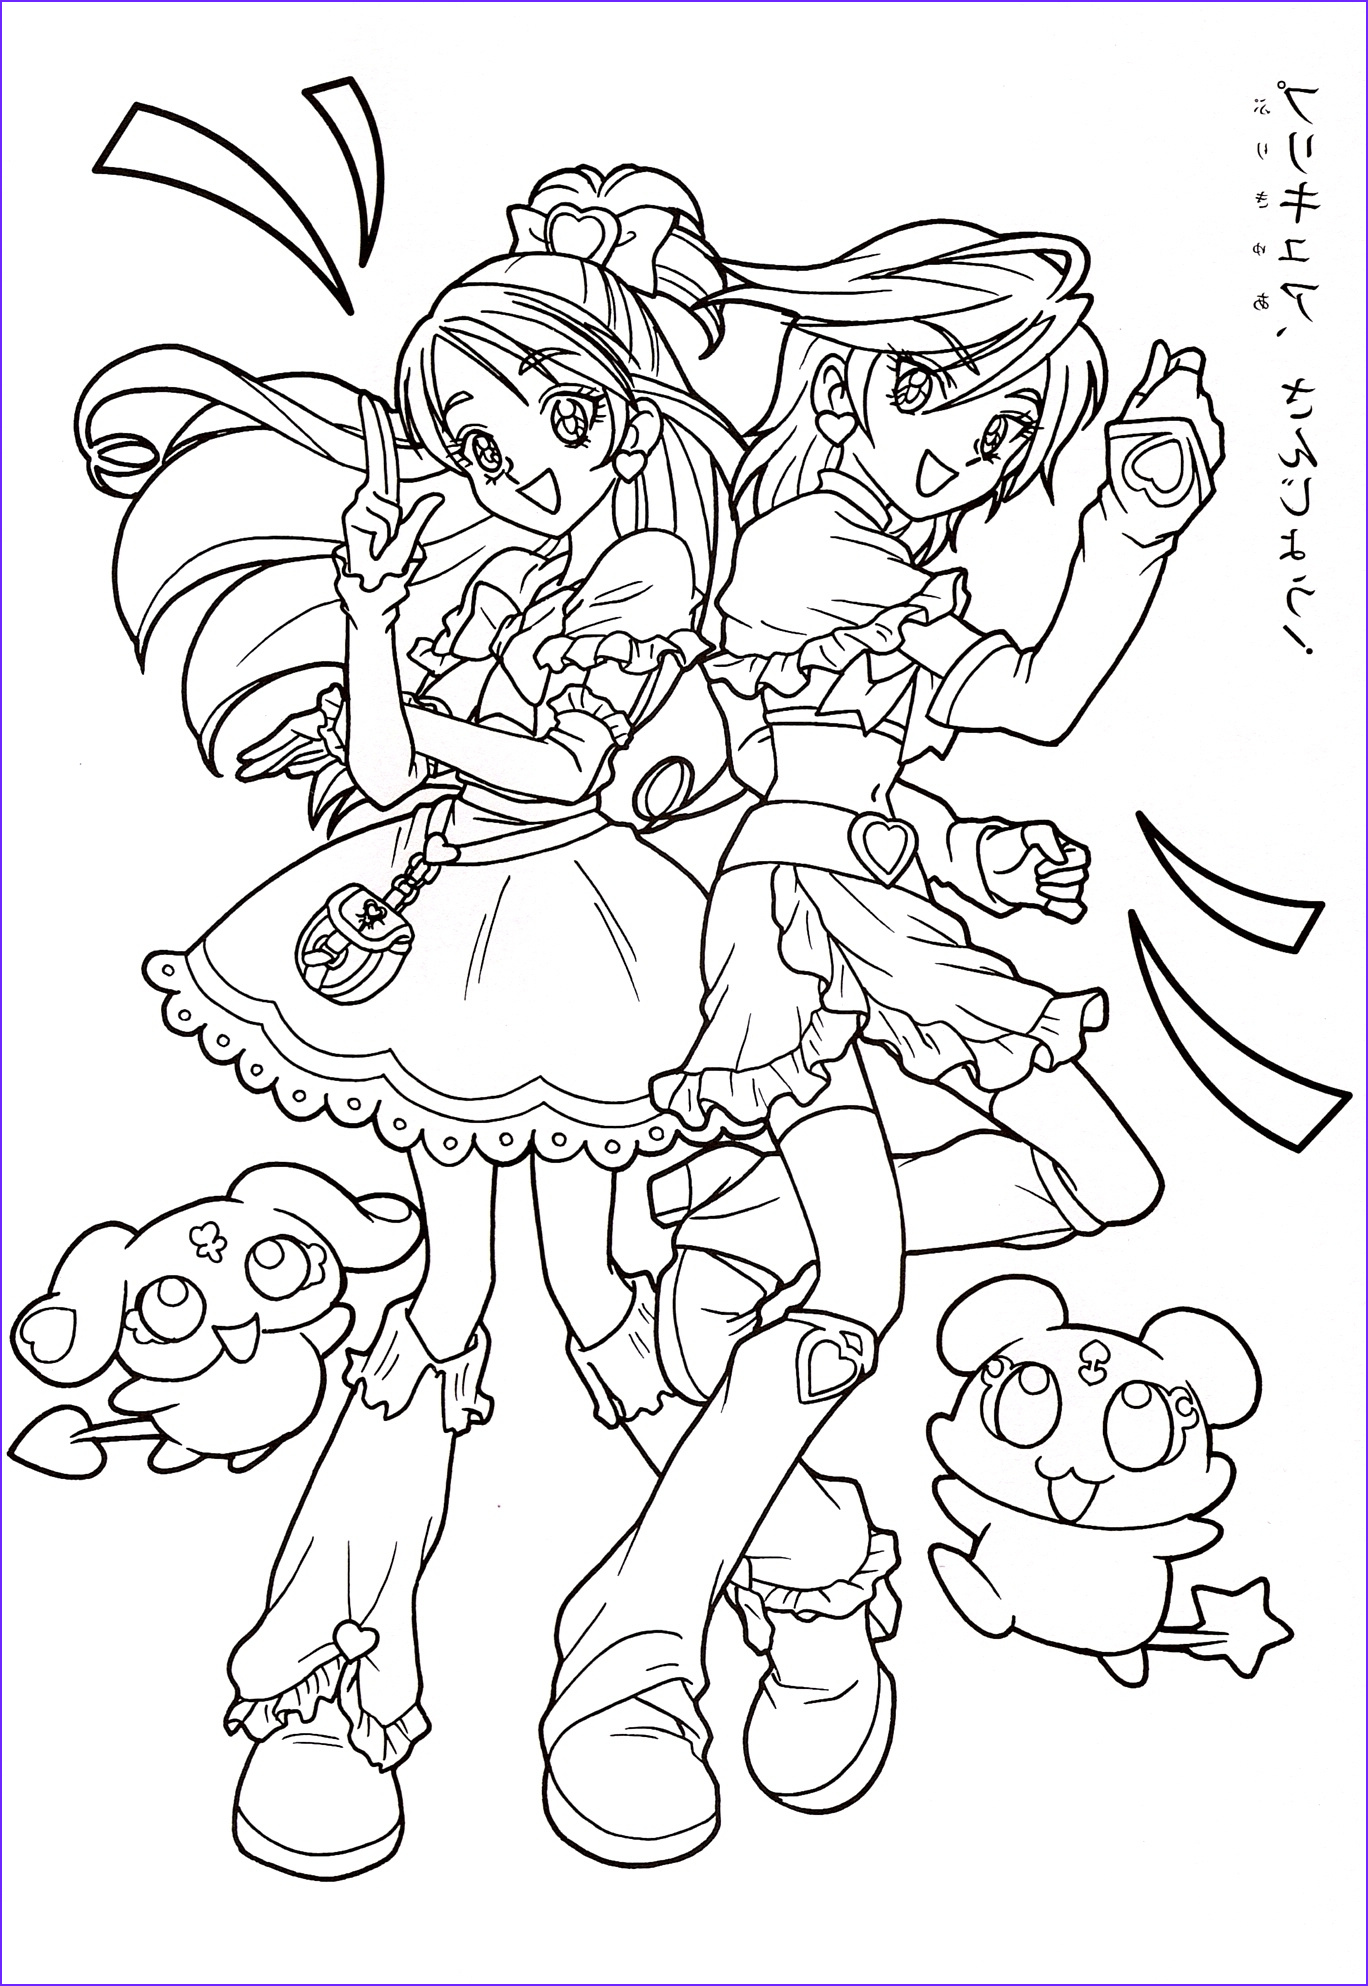 Precure Coloring Page Inspirational Collection Pretty Cure Coloring Book